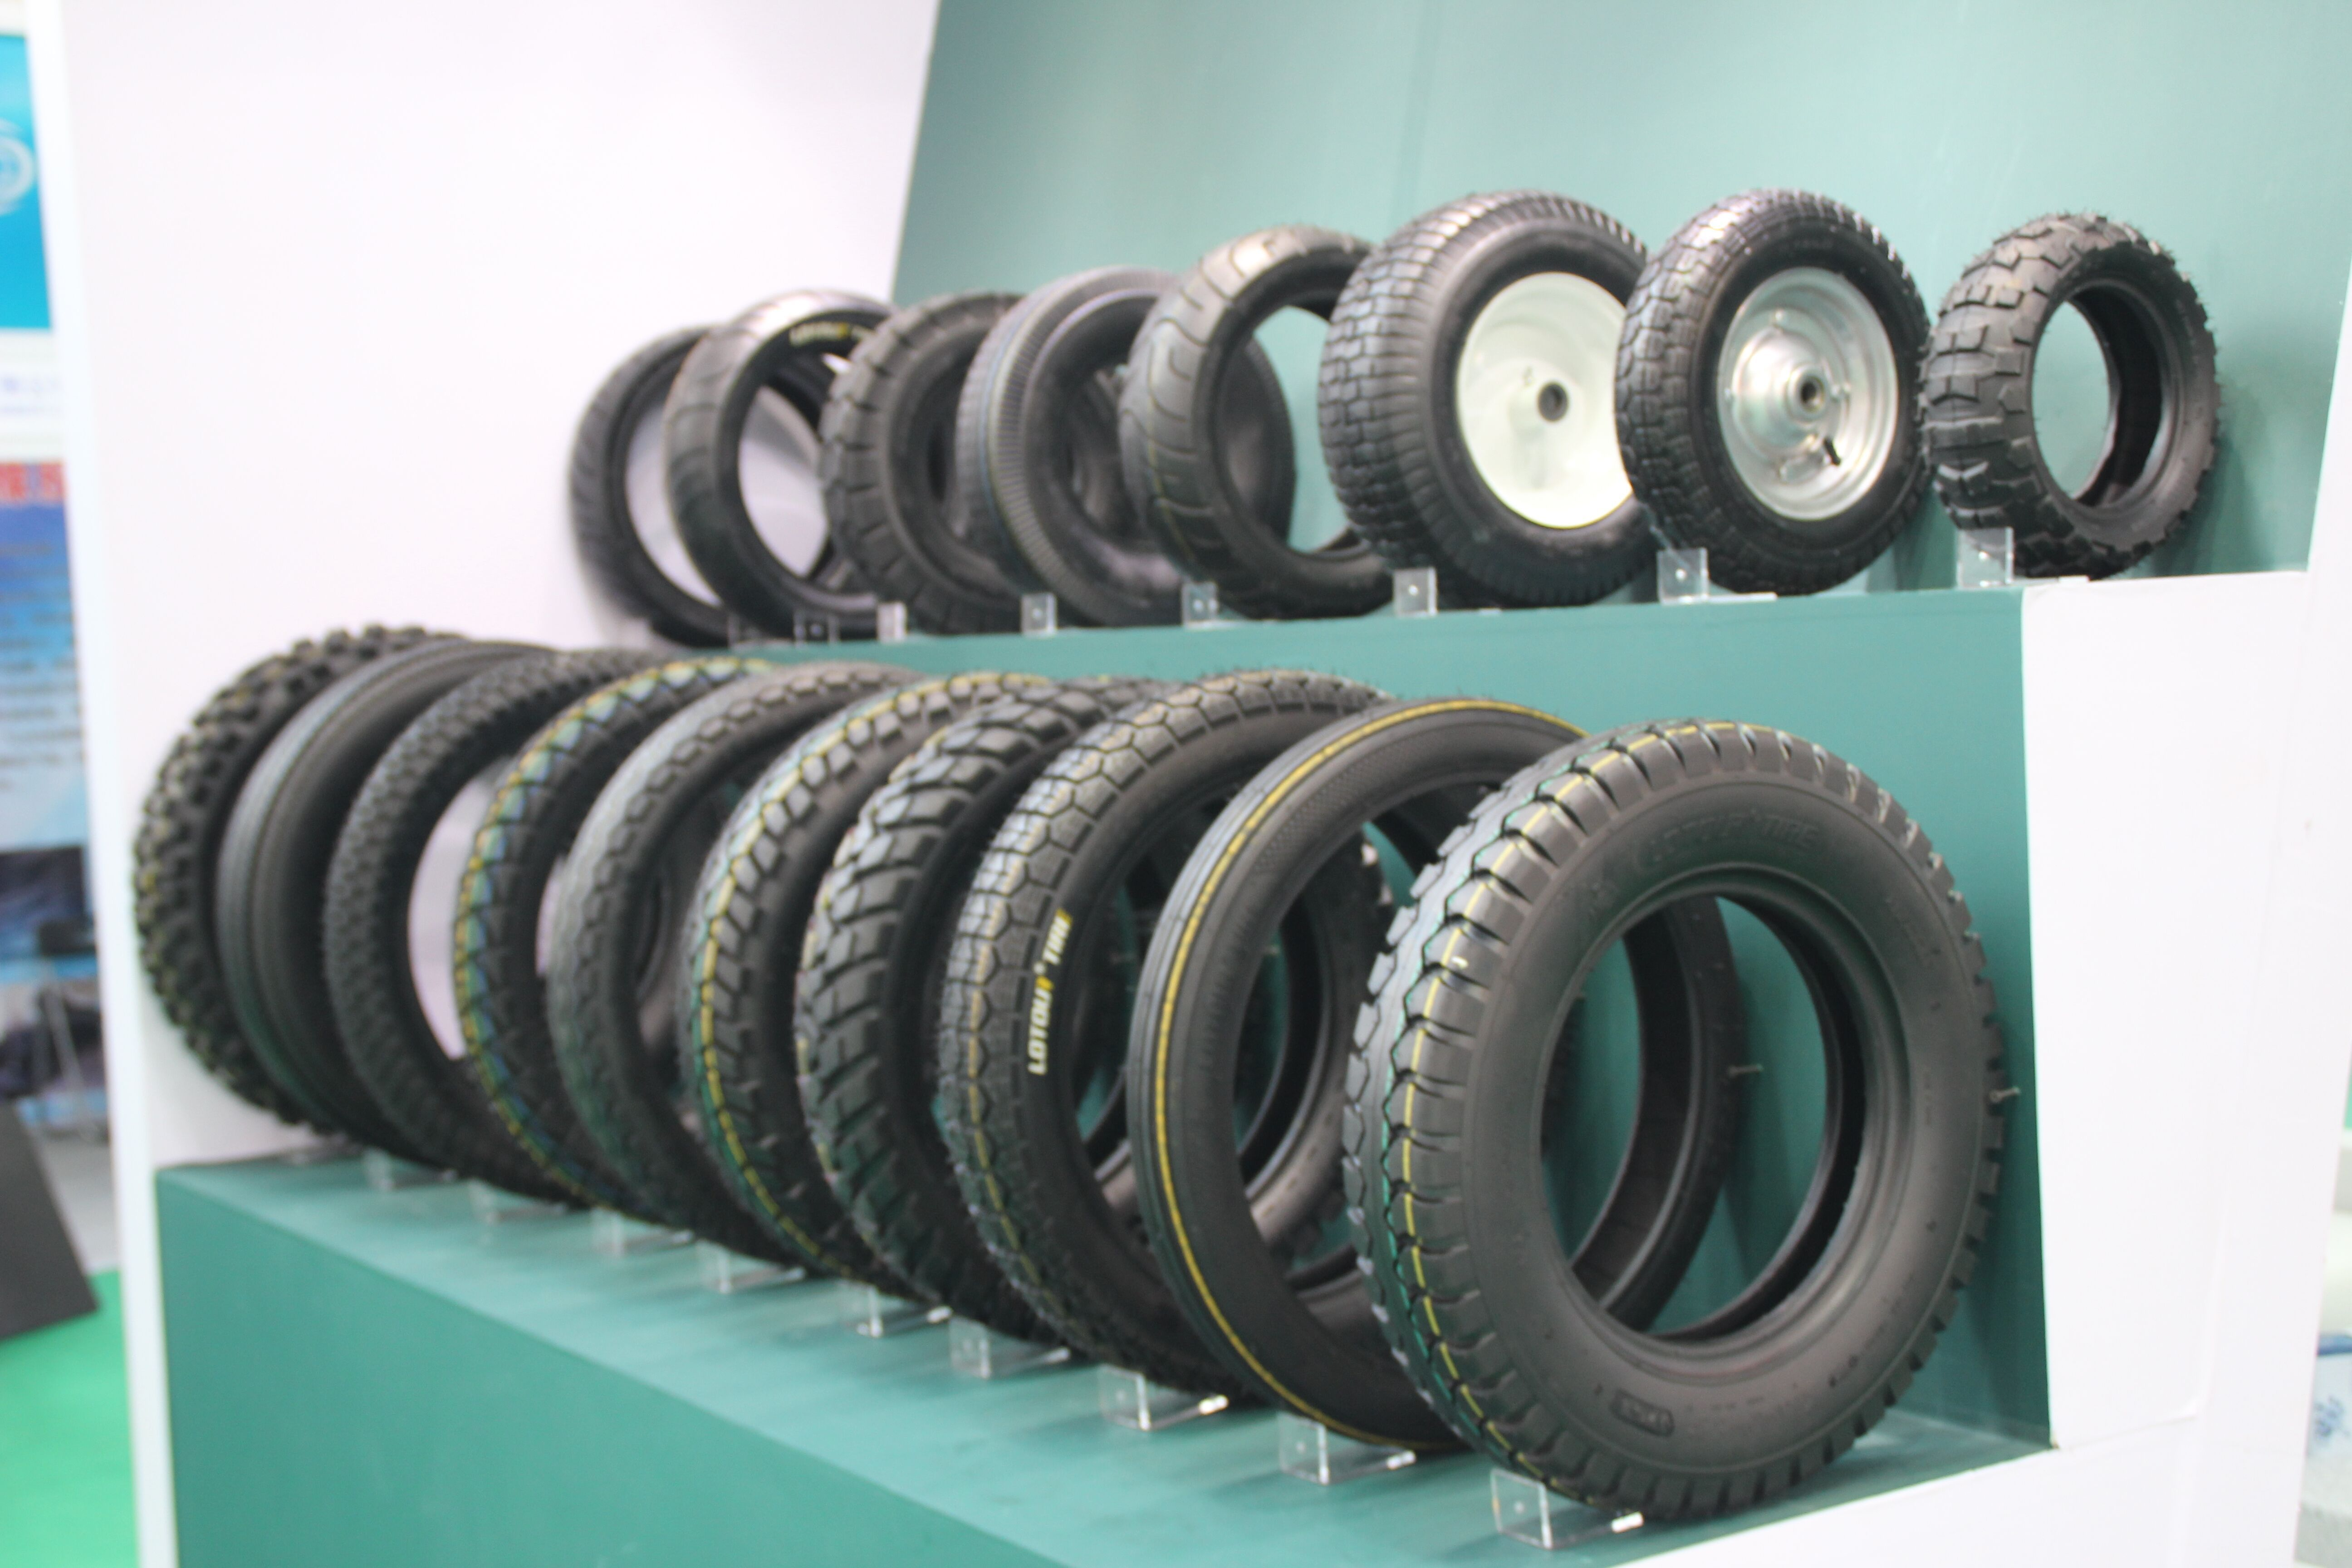 We Are In Tyre Expo Lotour Motorcycle Tire Is Showed The Best Material Is Used And The All Kinds Of Sizes Are Available For M Motorcycle Tires Tire Motorcycle